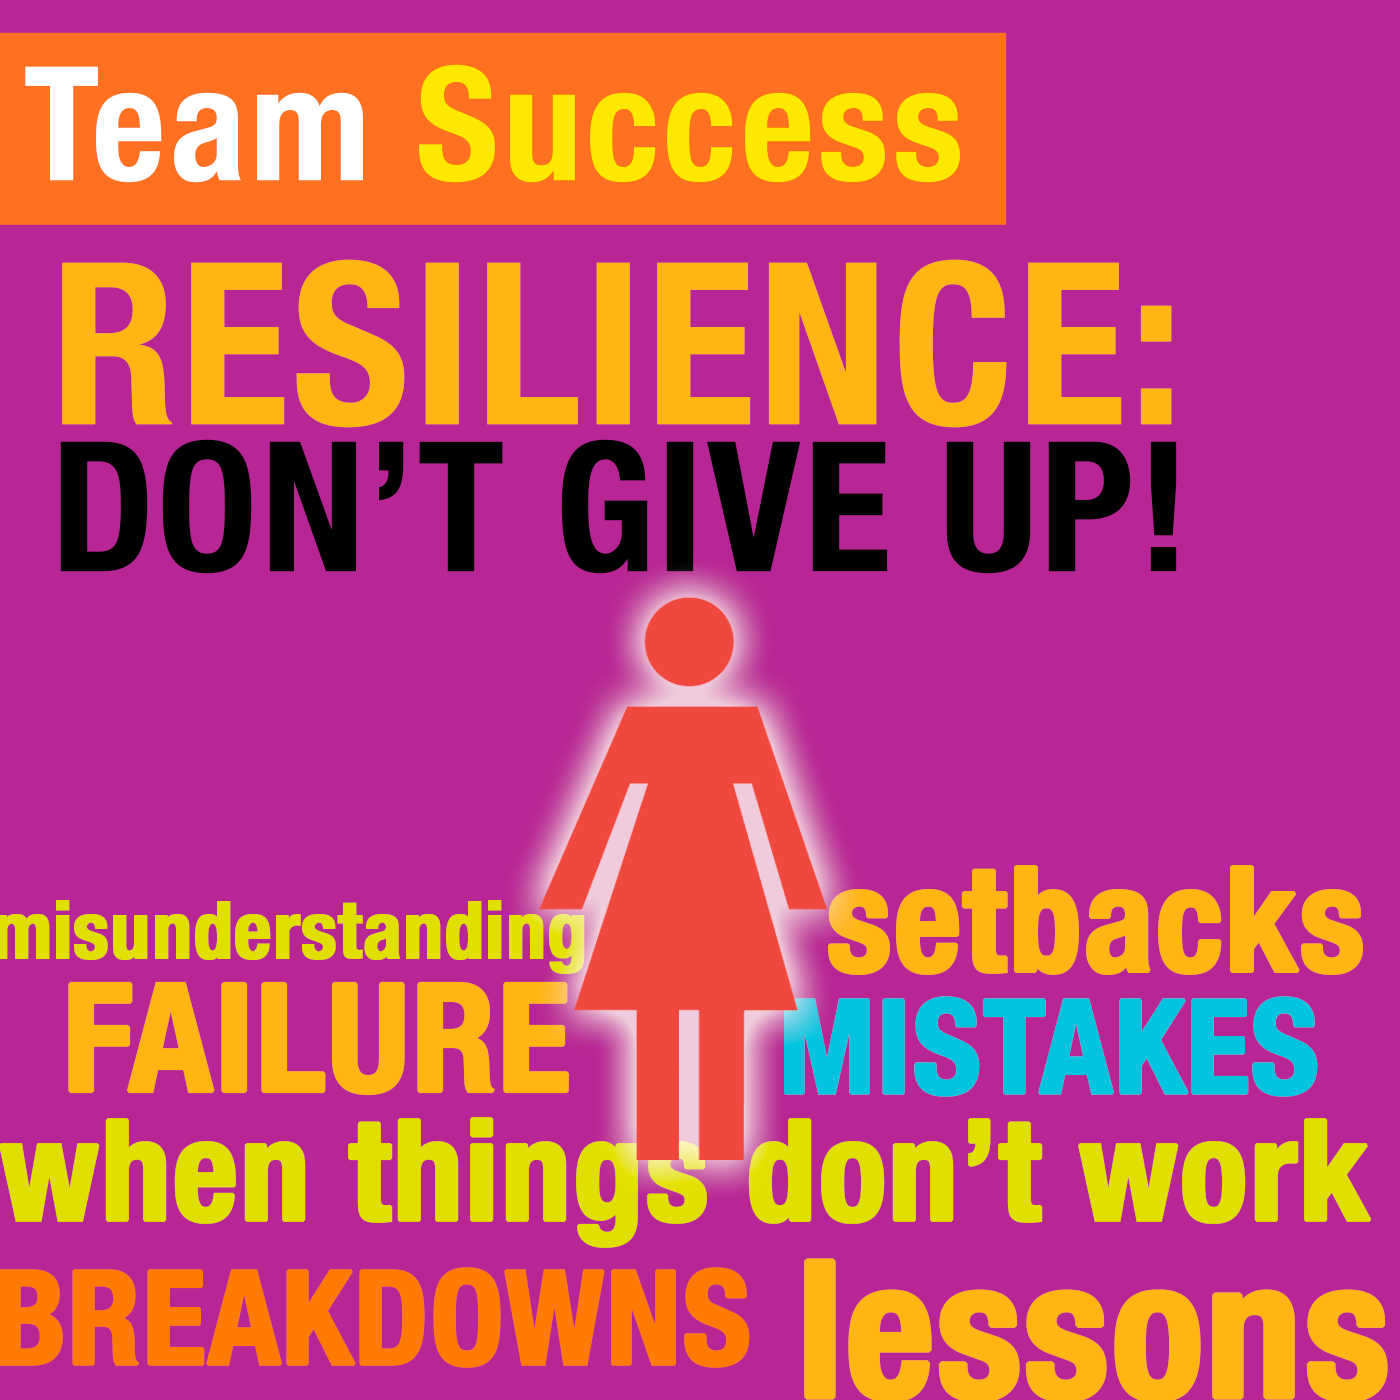 Resilience: Don't Give Up! - Team Success Podcast